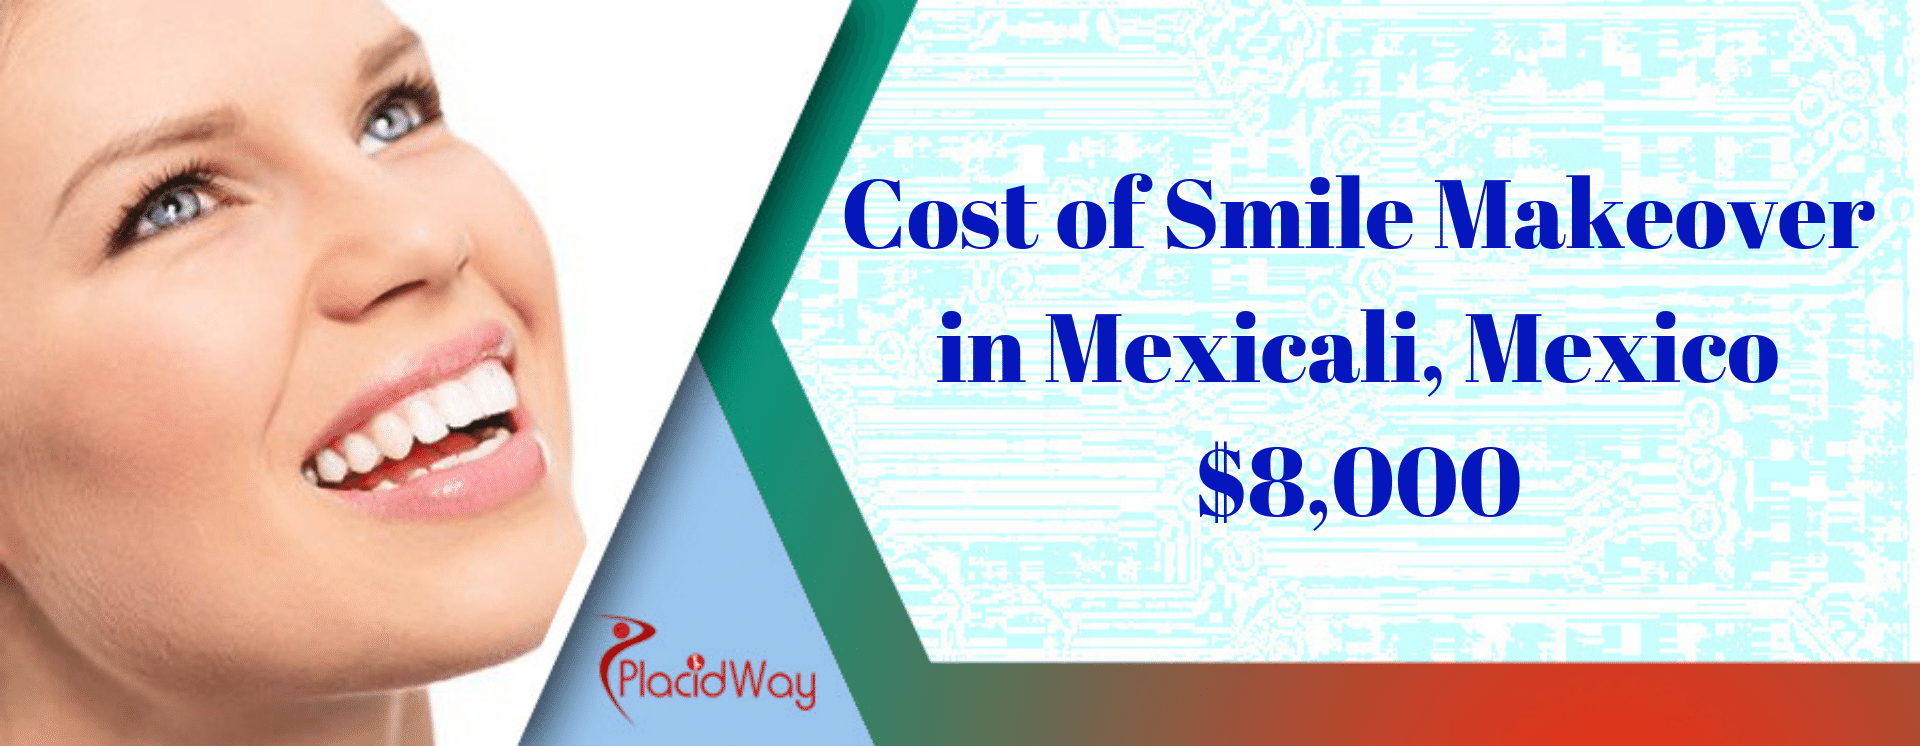 Cost of Smile Makeover in Mexicali, Mexico